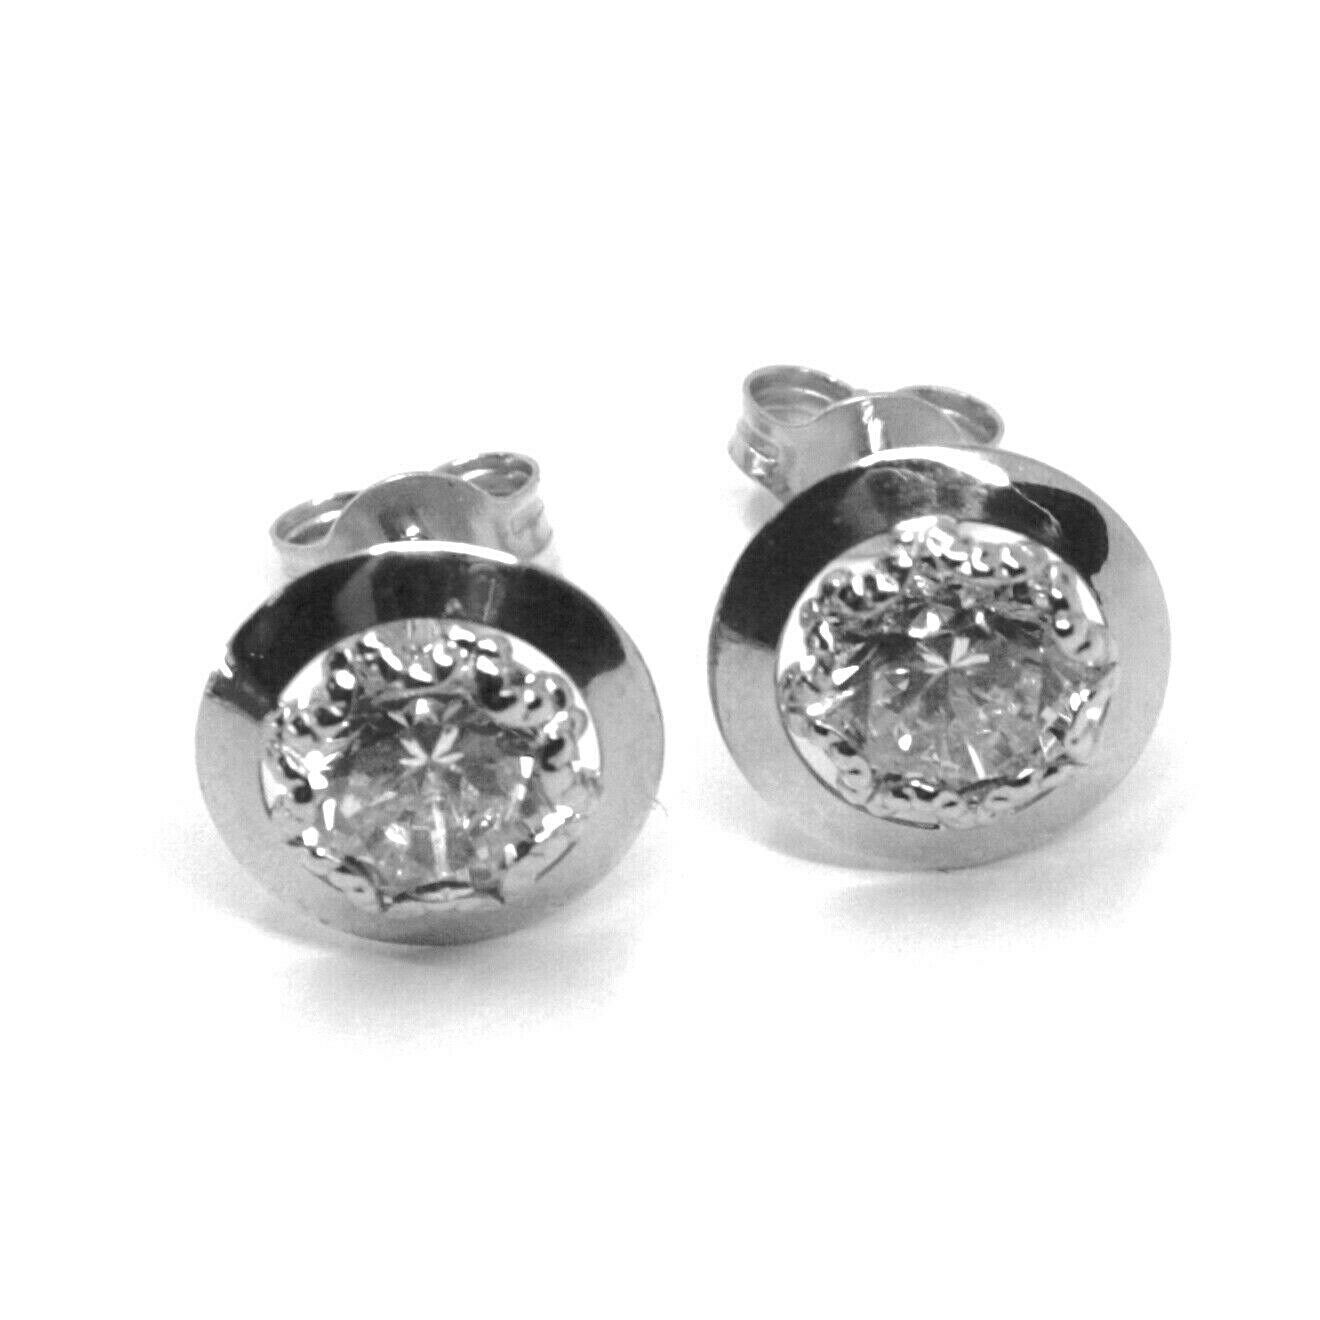 18K WHITE GOLD BUTTON EARRINGS CUBIC ZIRCONIA, ROUND DISC WORKED FRAME, 10 MM